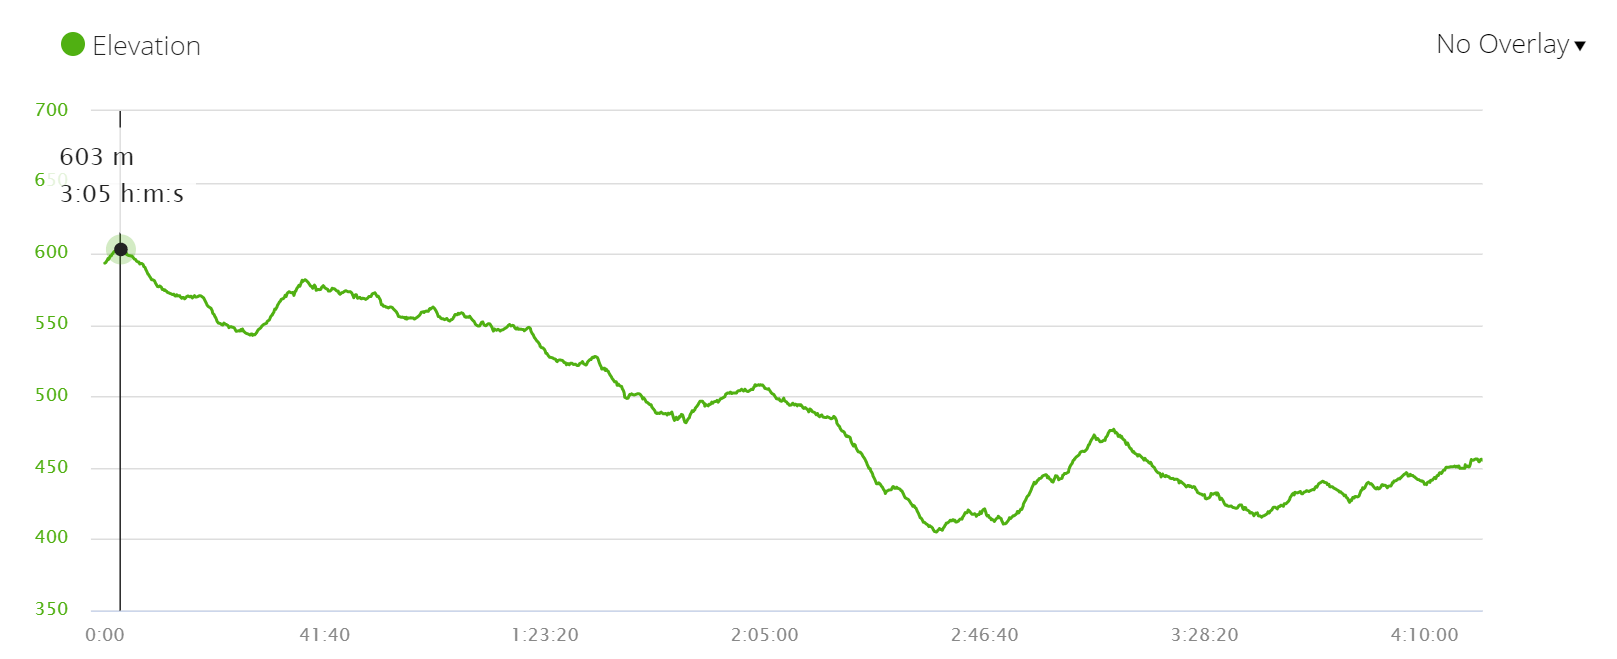 Day 5 elevation profile, Via de la Plata, Spain